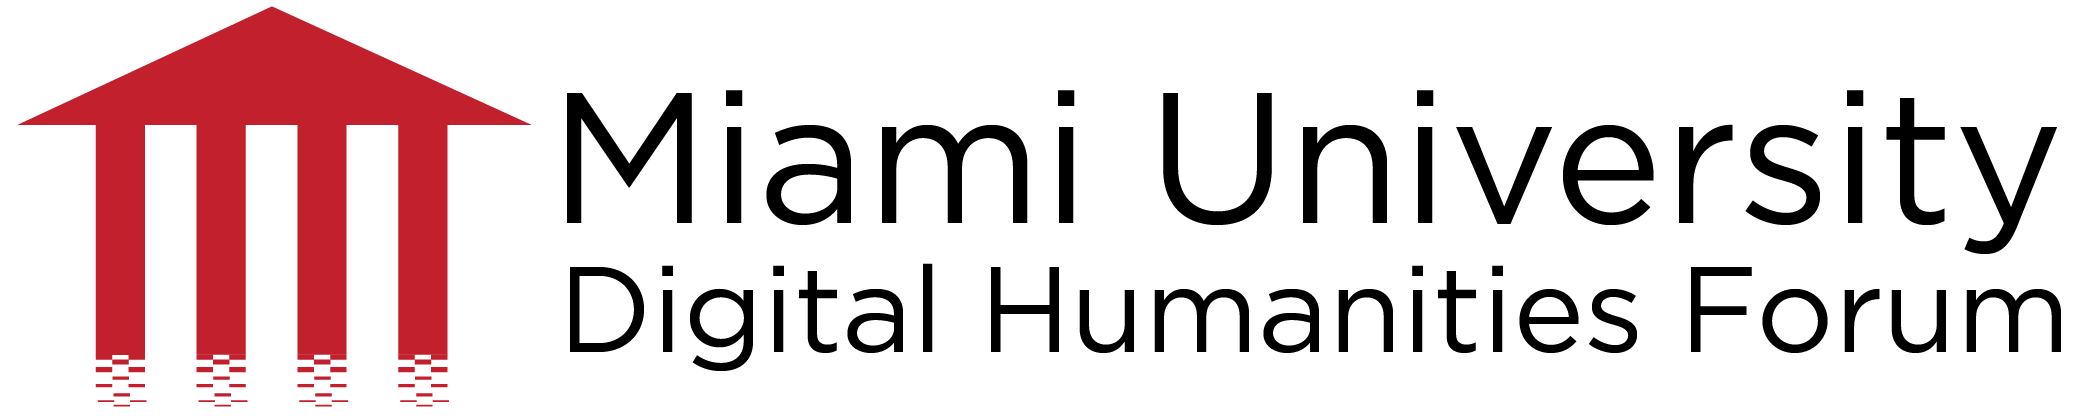 Miami University Digital Humanities Forum